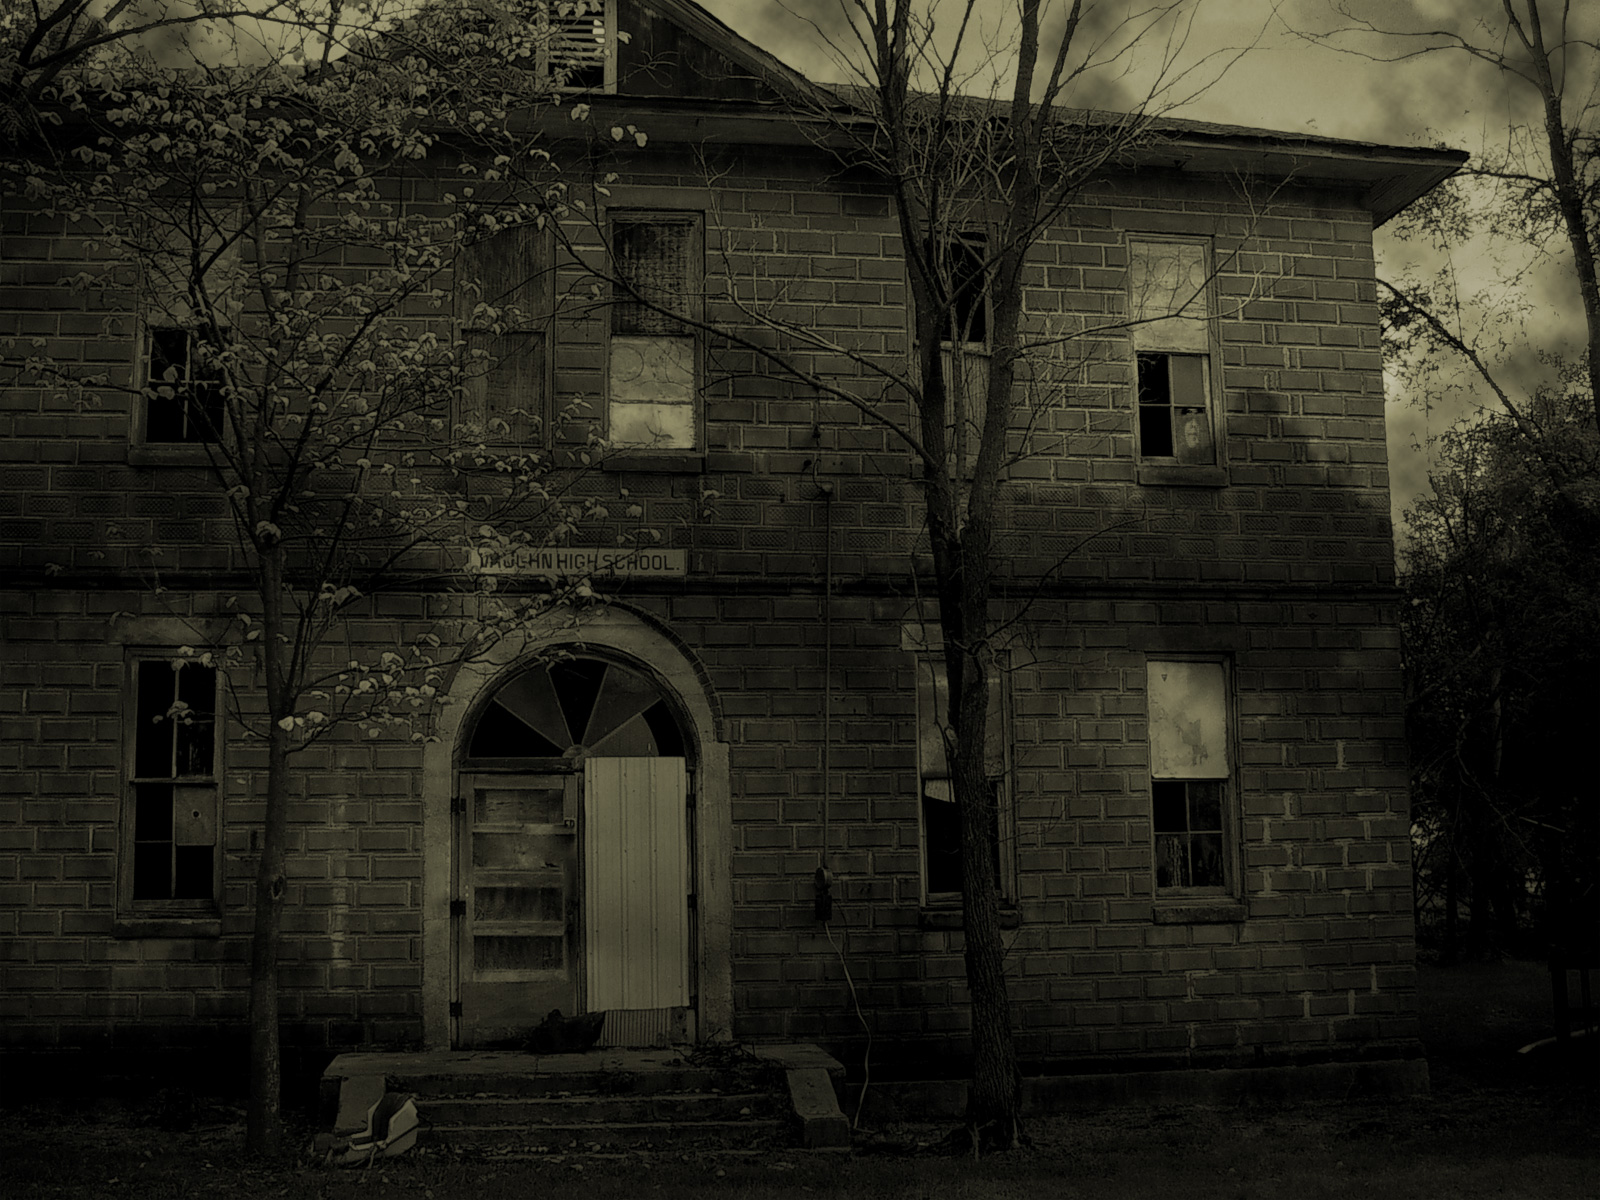 haunted house wallpaper - photo #22